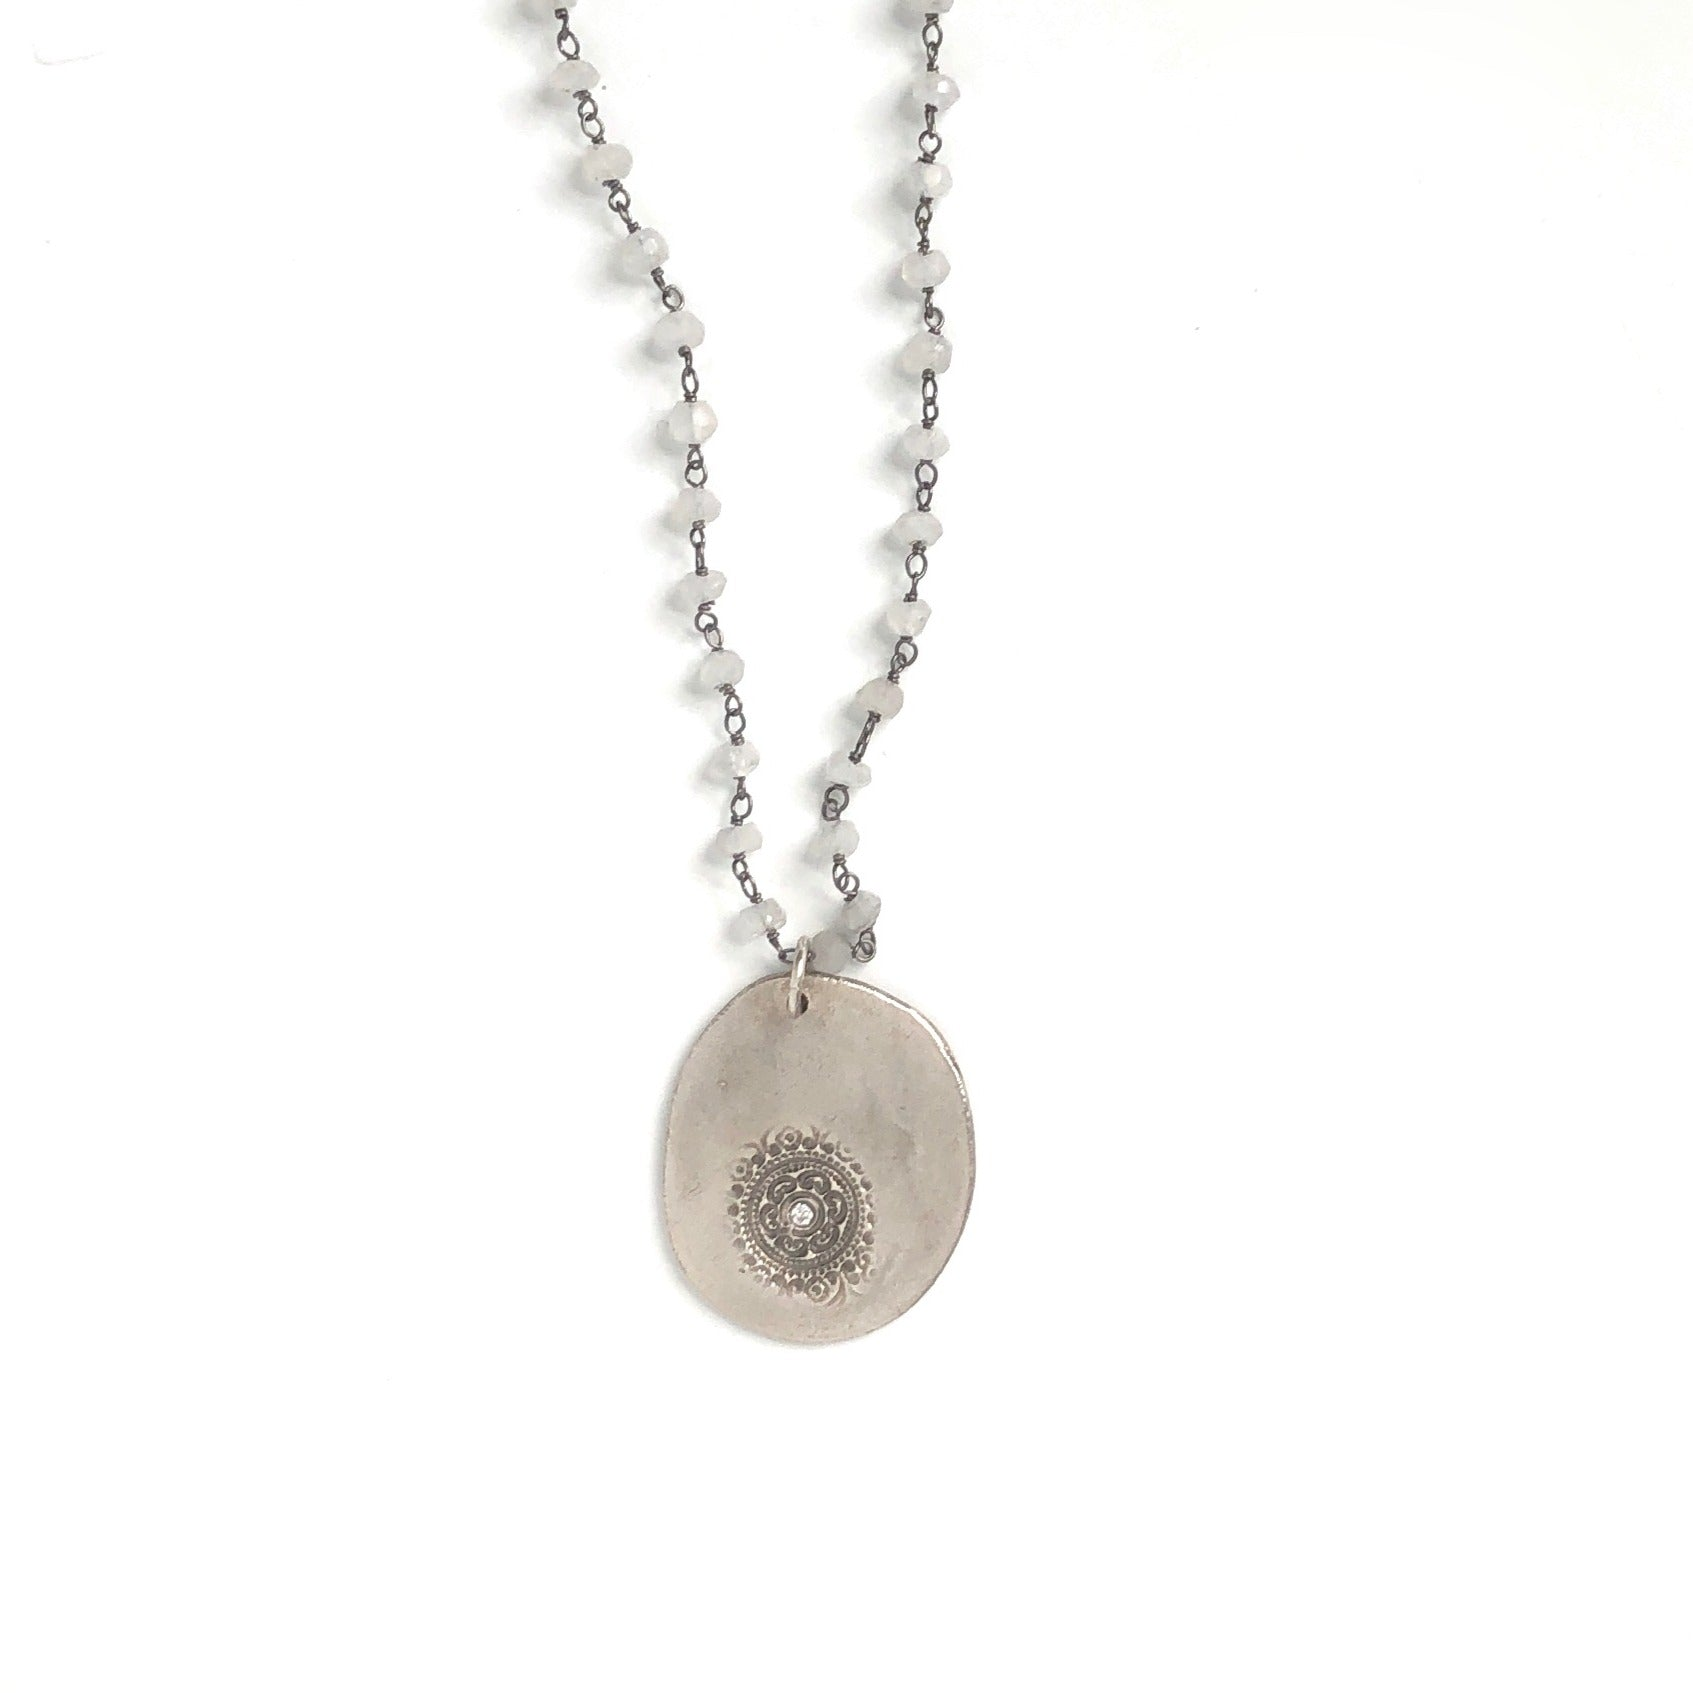 One of a Kind Moonstone Chain Necklace with Silver Circles of Life Charm Necklace 20051 - MAS Designs